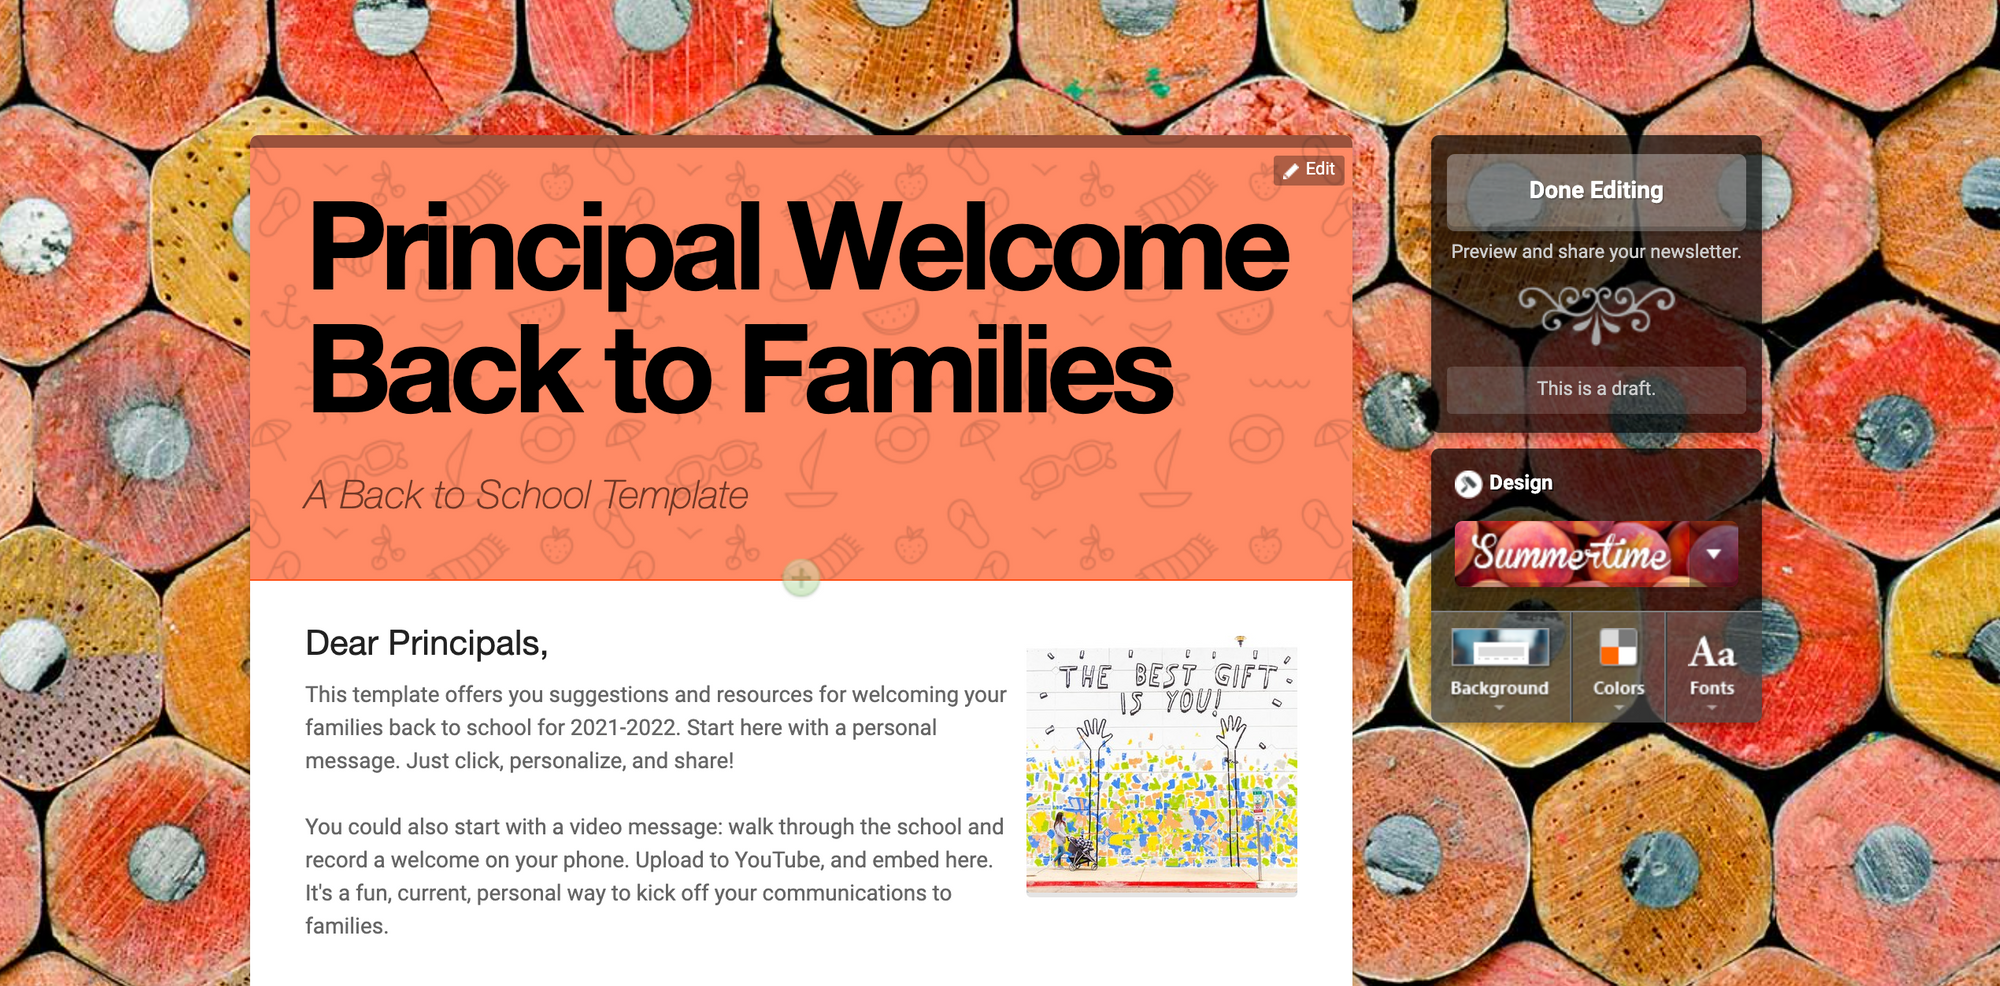 Back to school newsletter template titles Principal Welcome Back to Families from Smore's school newsletter template center